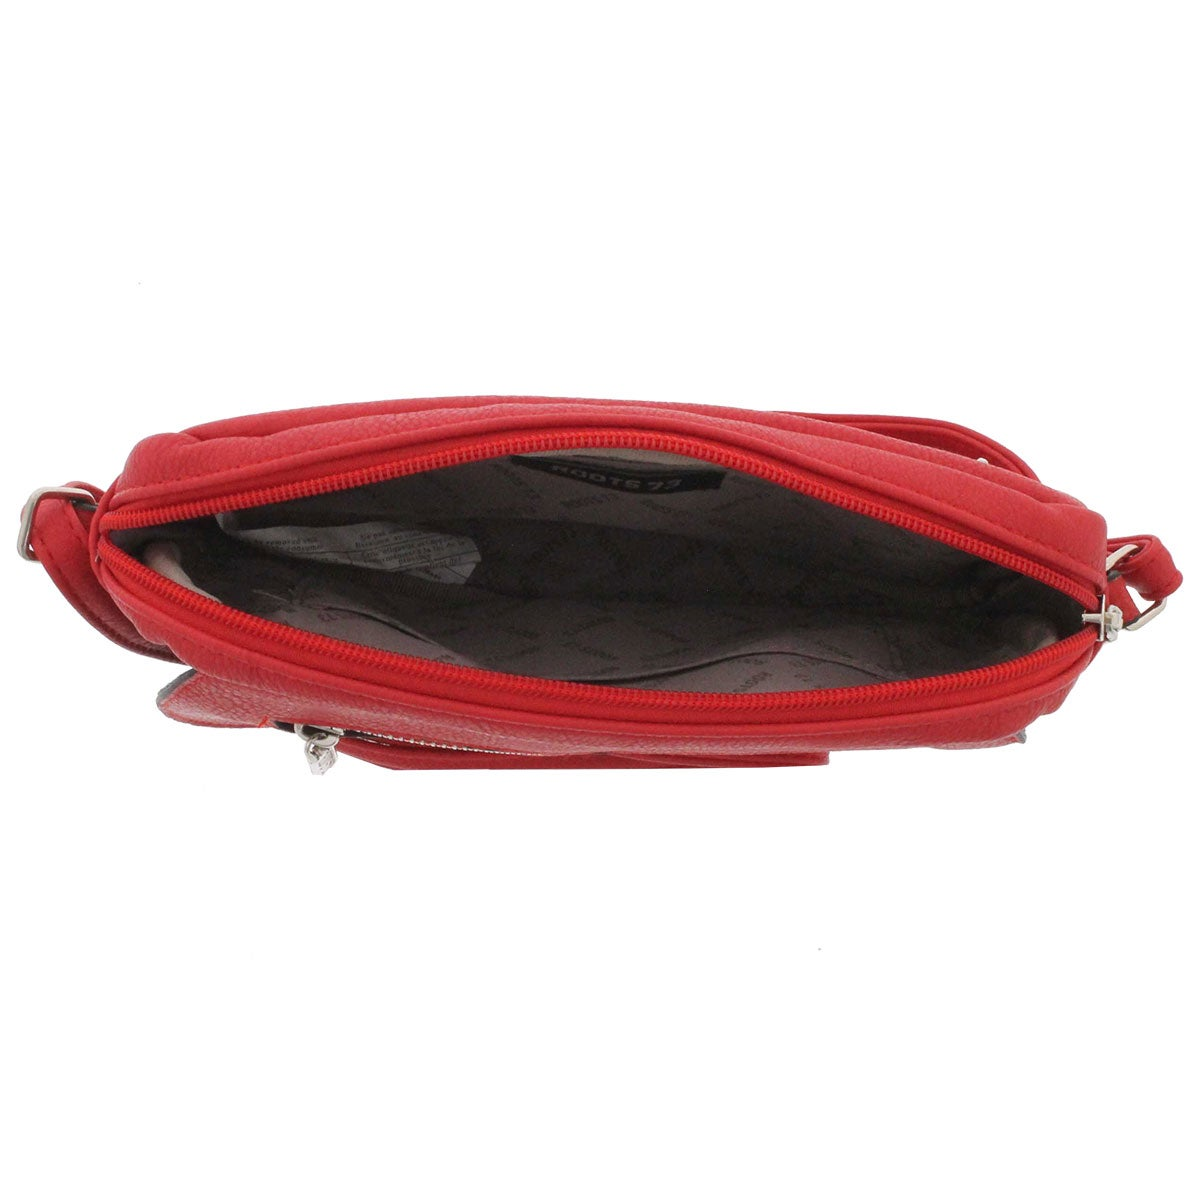 Lds Roots73 coral east/west crossbody